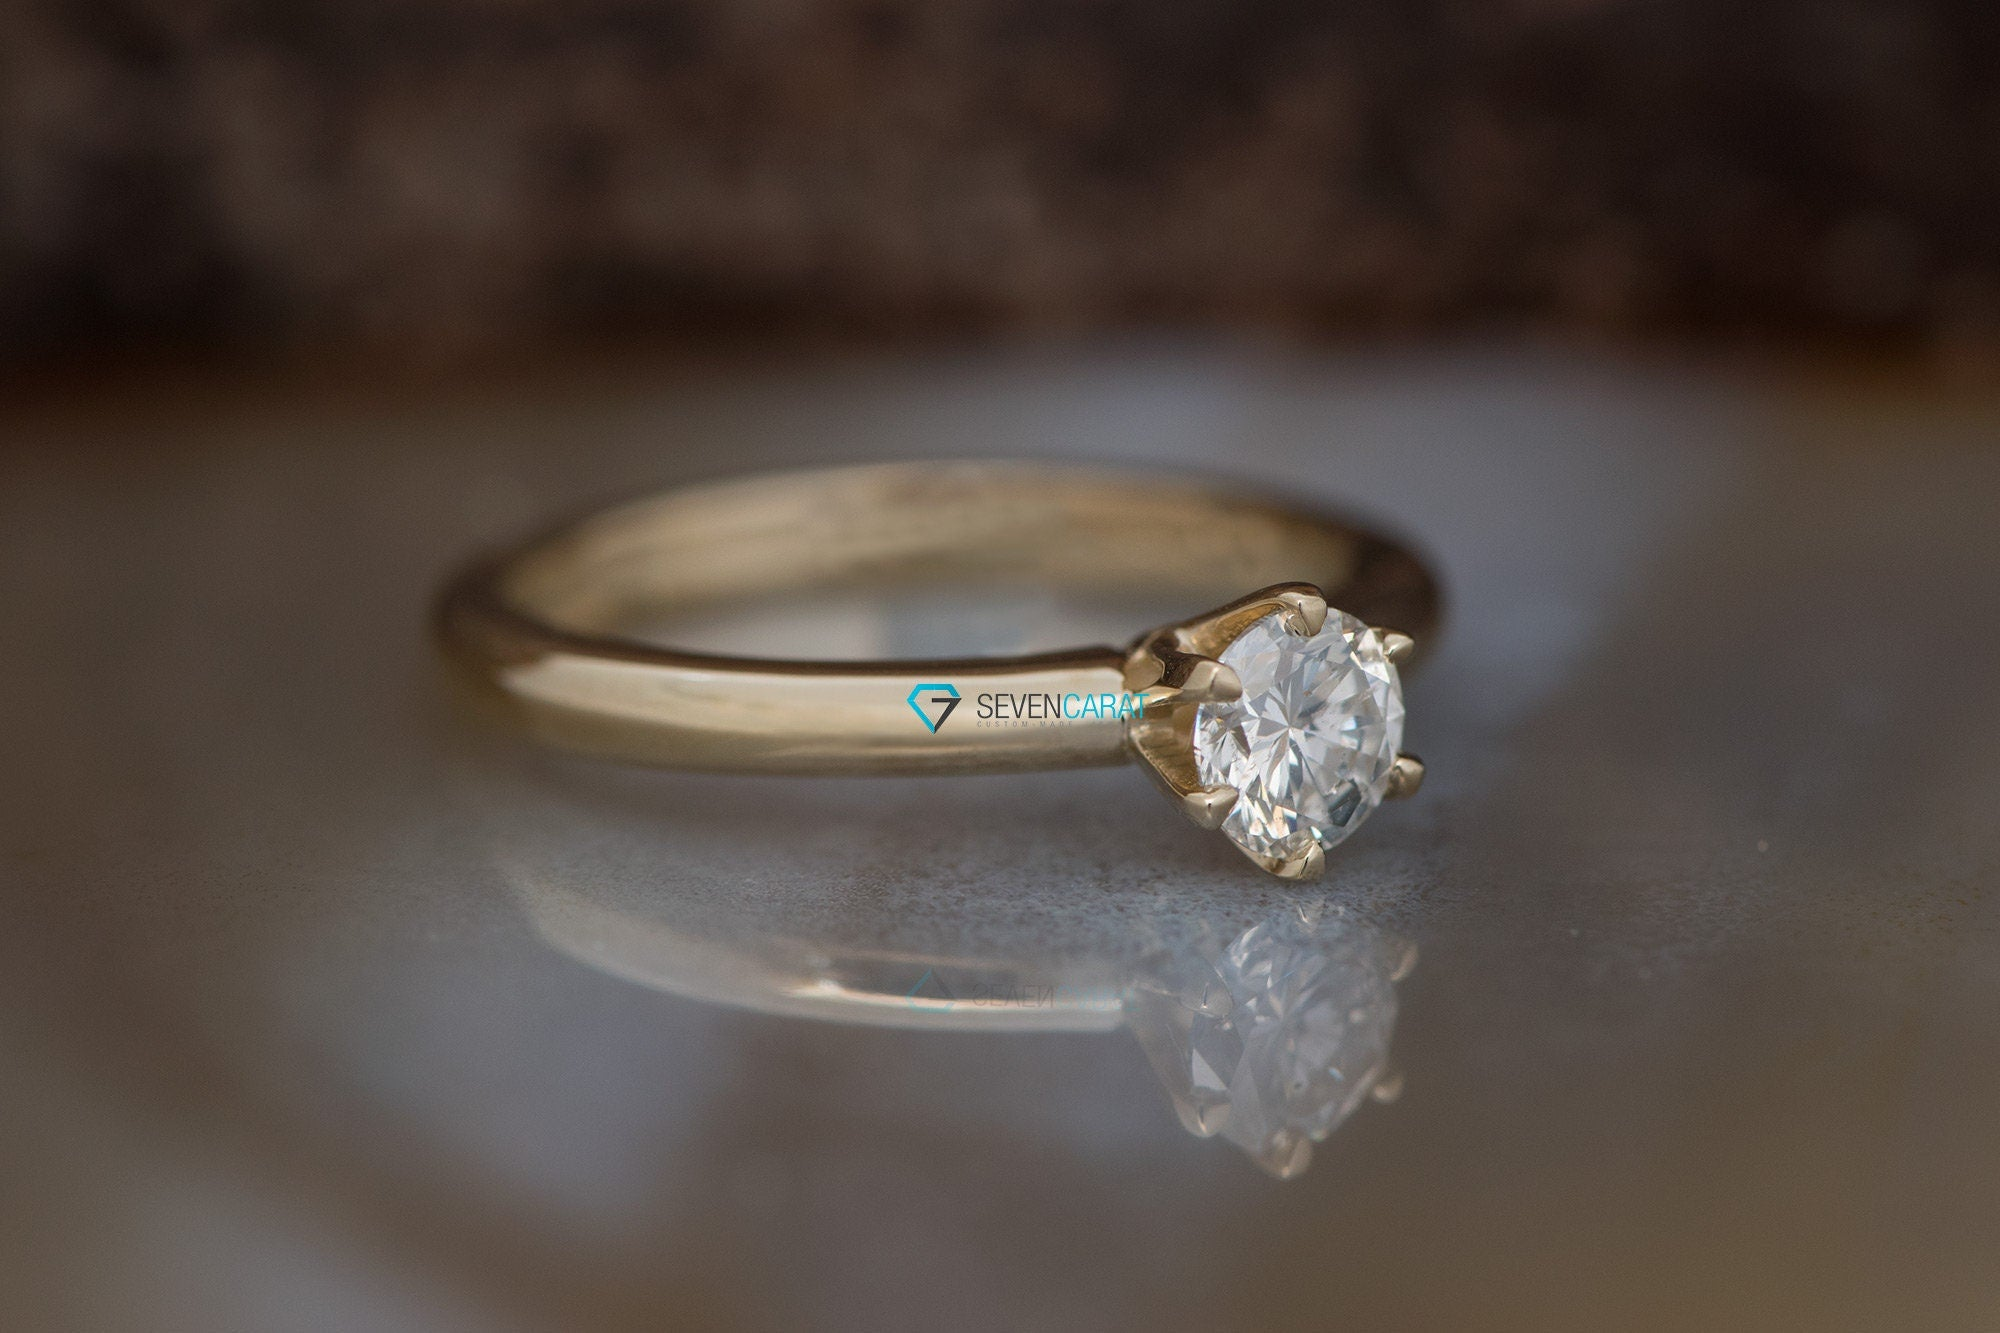 Classic round engagement ring-Solitaire diamond ring-Solitaire 6 prong-Solitaire ring 0.50 ct